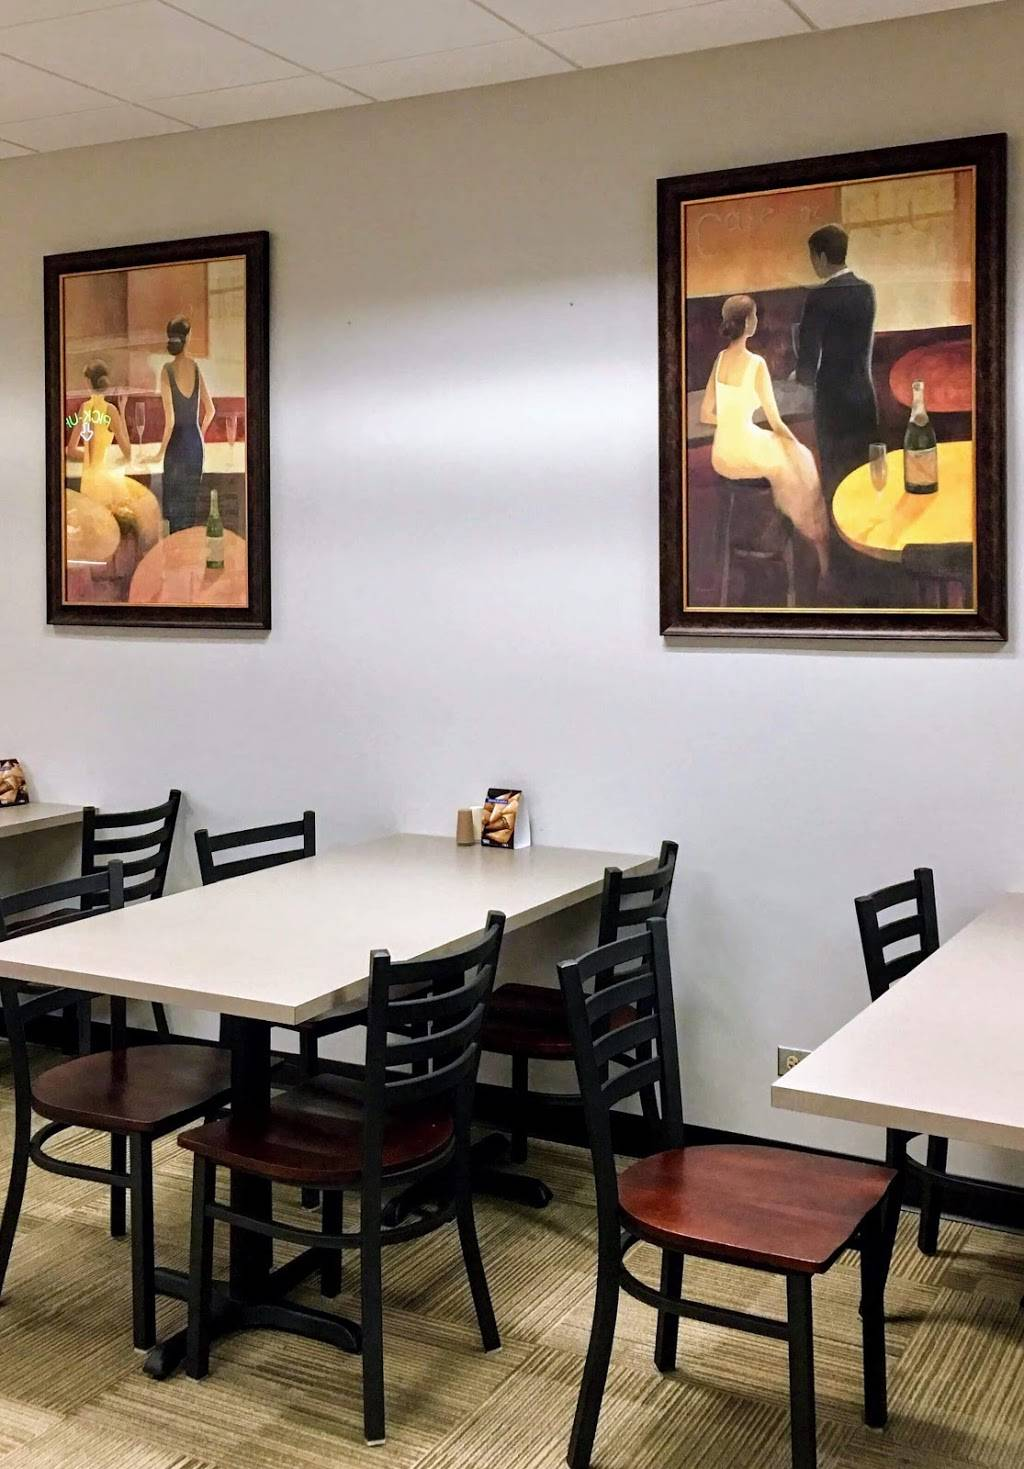 Nickos Cafe & Deli | restaurant | 1815 S Meyers Rd, Oakbrook Terrace, IL 60181, USA | 6308908400 OR +1 630-890-8400